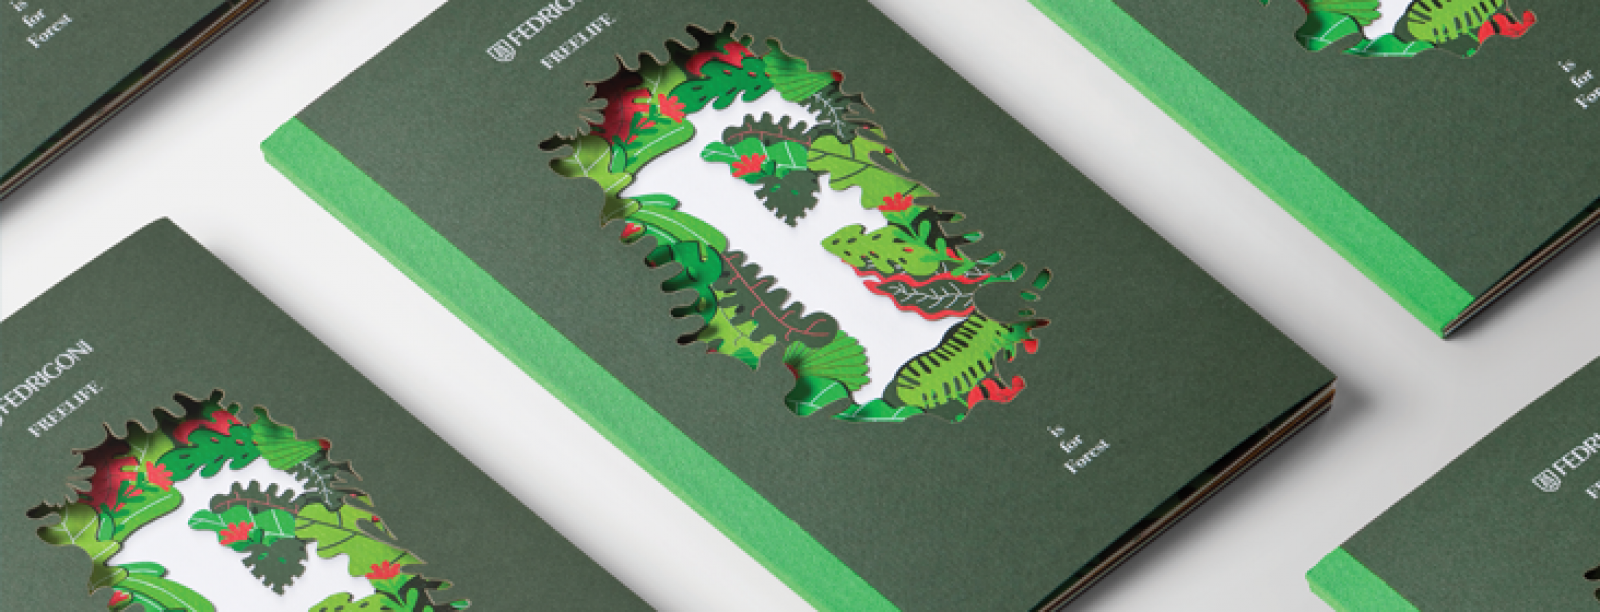 Victionary_Flora_Fauna_sleekdesign.fr_01